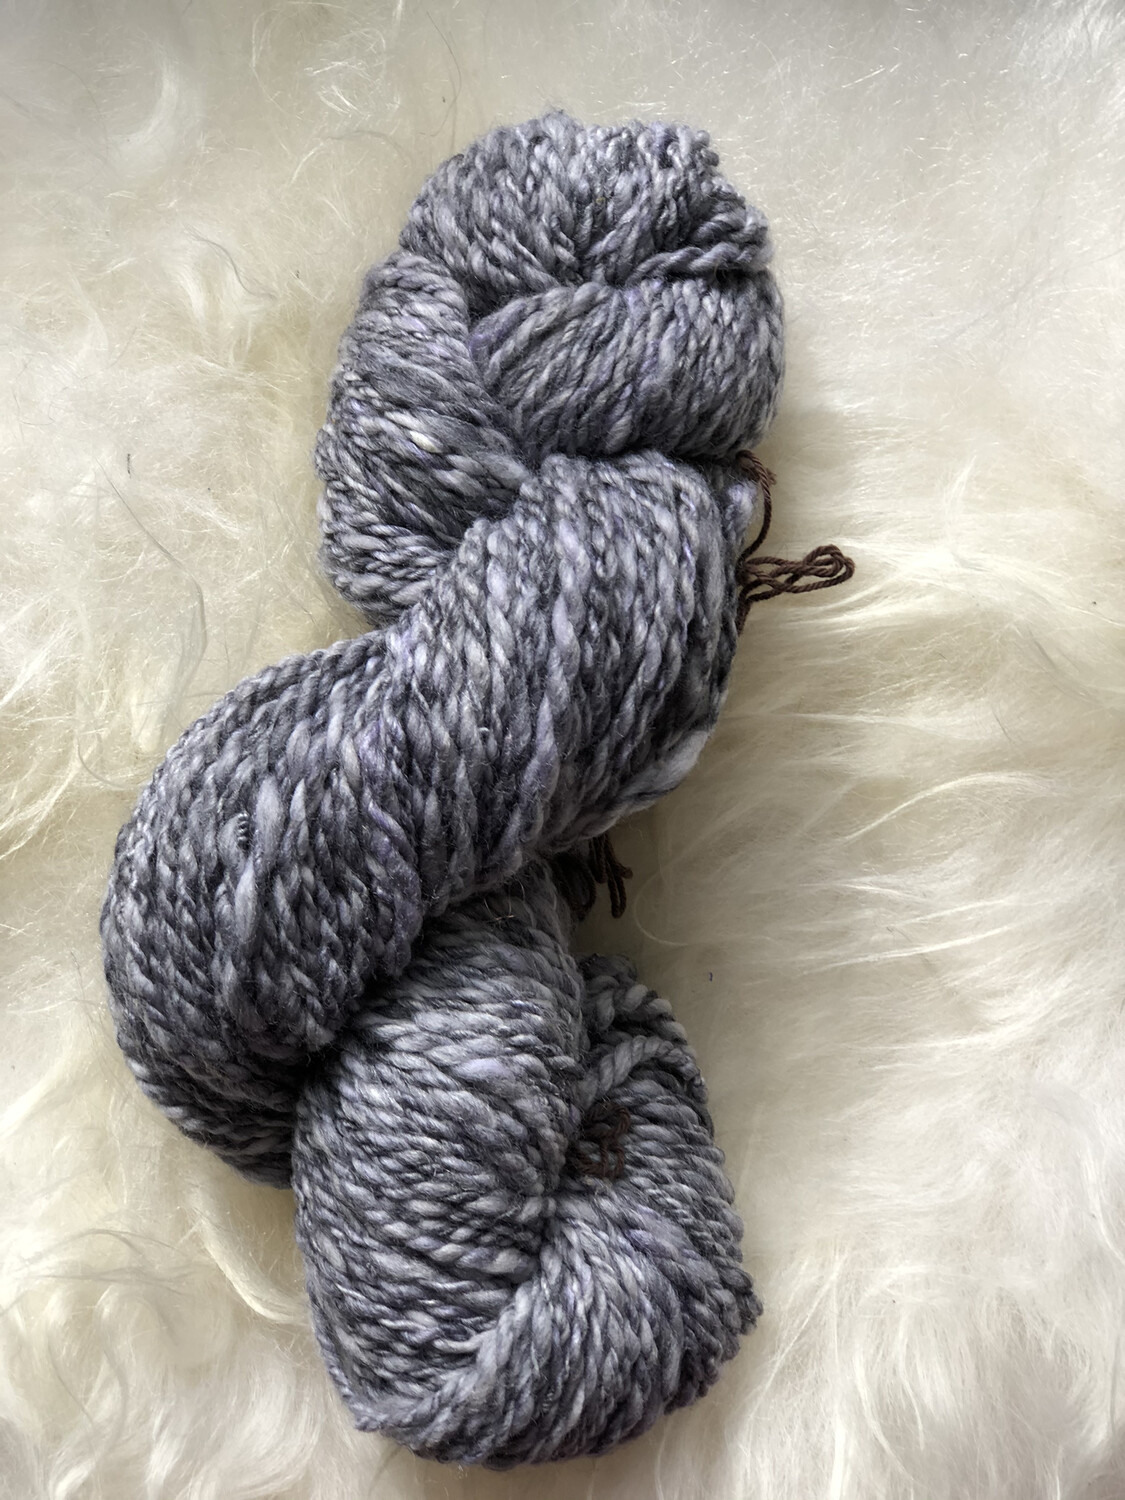 Handspun Shades Of Greys Merino/Silk Yarn